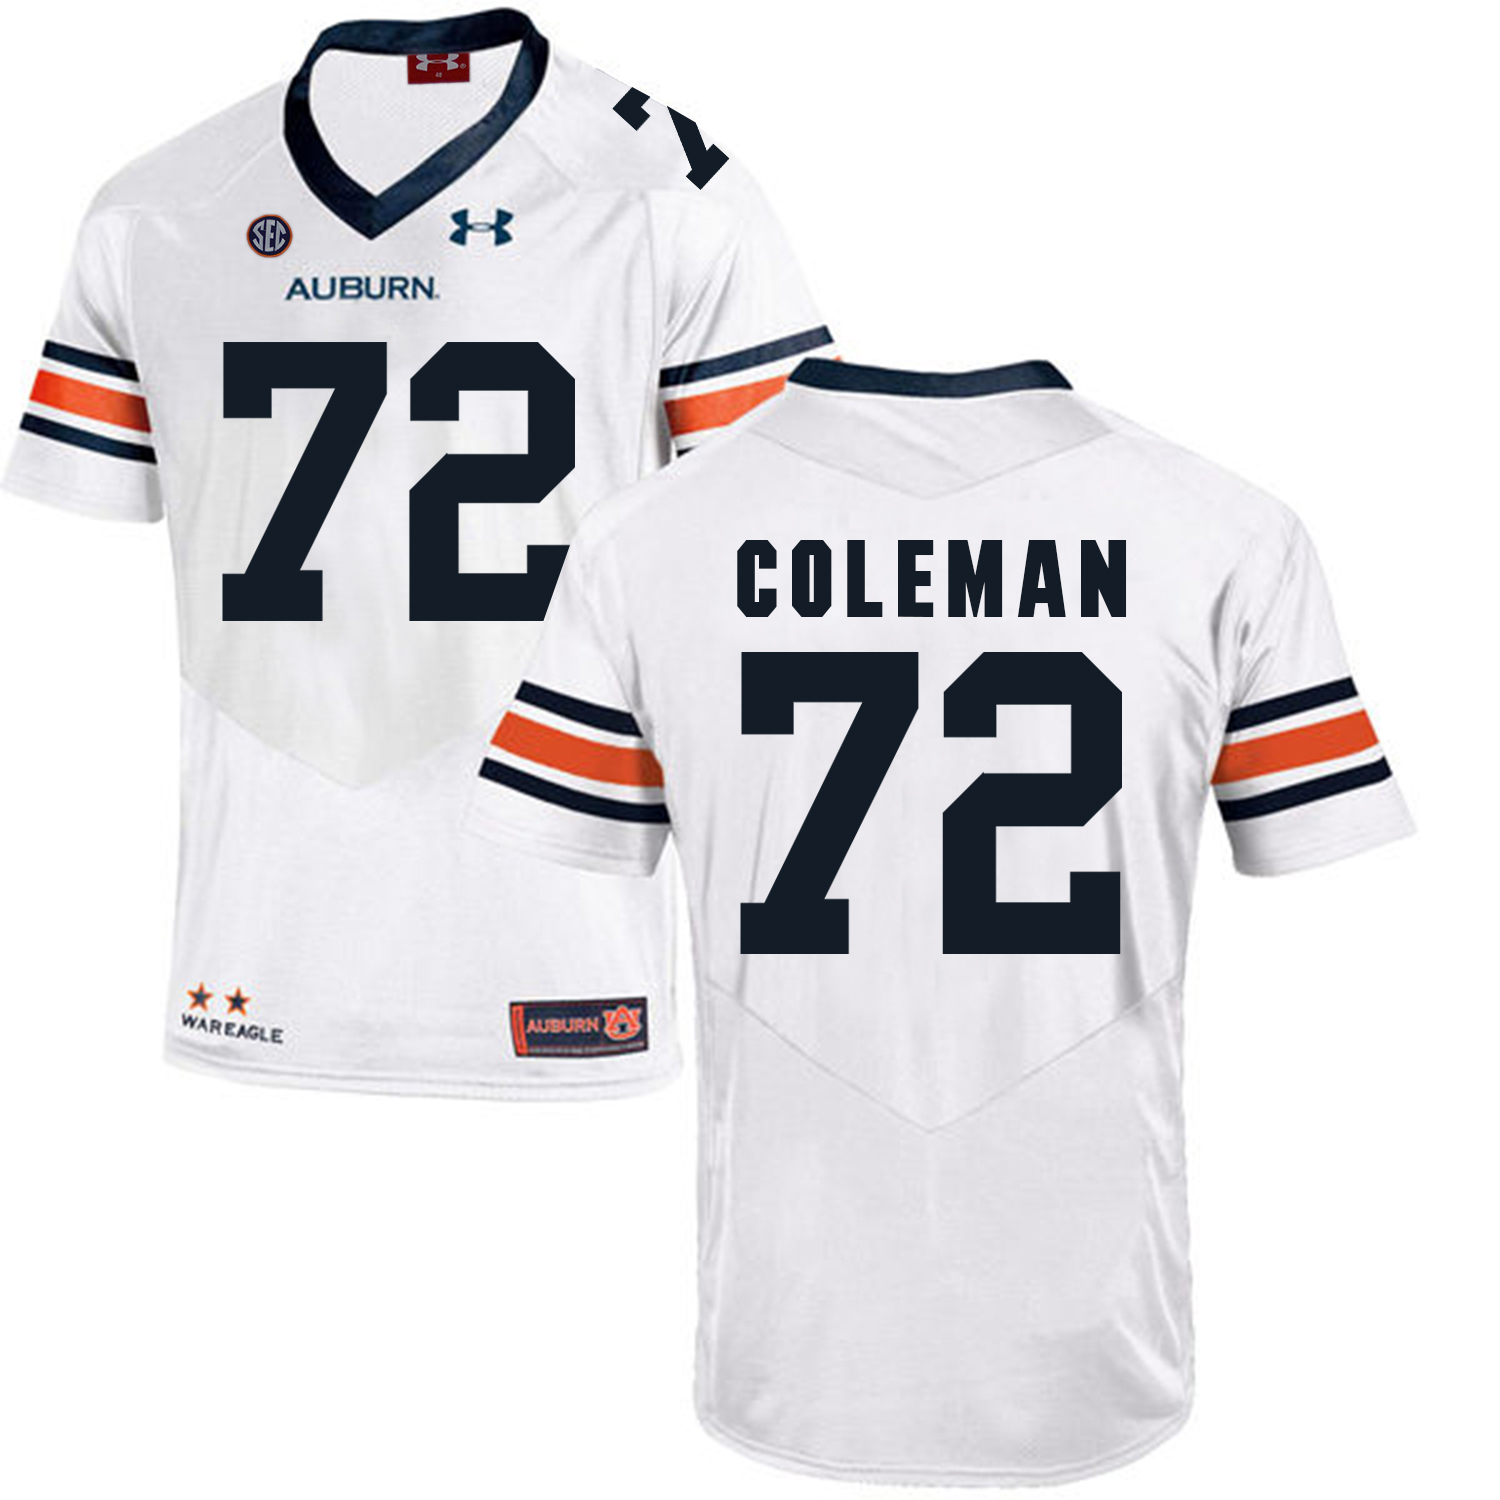 Auburn Tigers 72 Shon Coleman White College Football Jersey